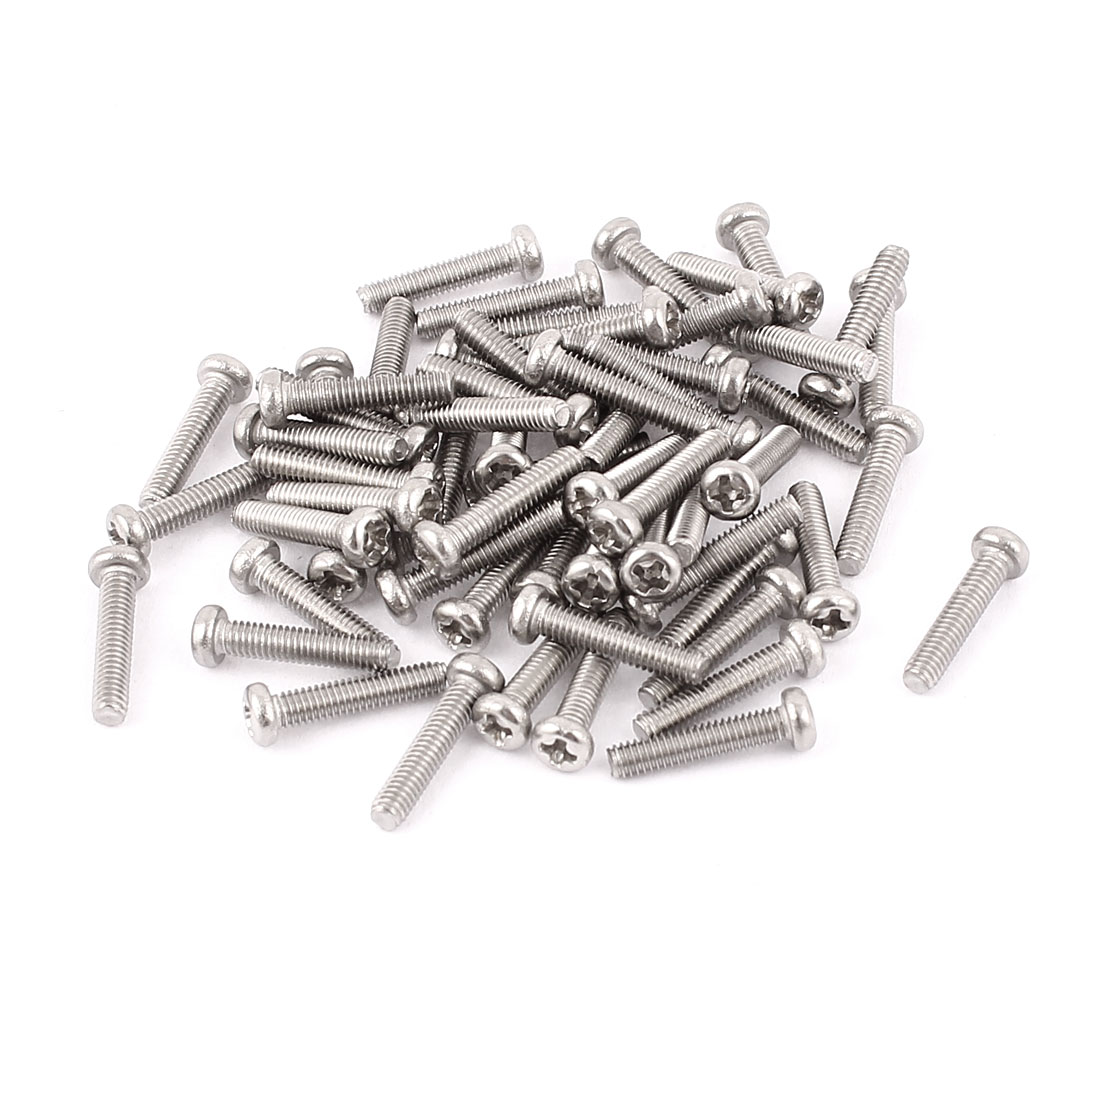 M2.5 x 12mm 304 Stainless Steel Crosshead Phillips Pan Head Screws Bolt 60pcs